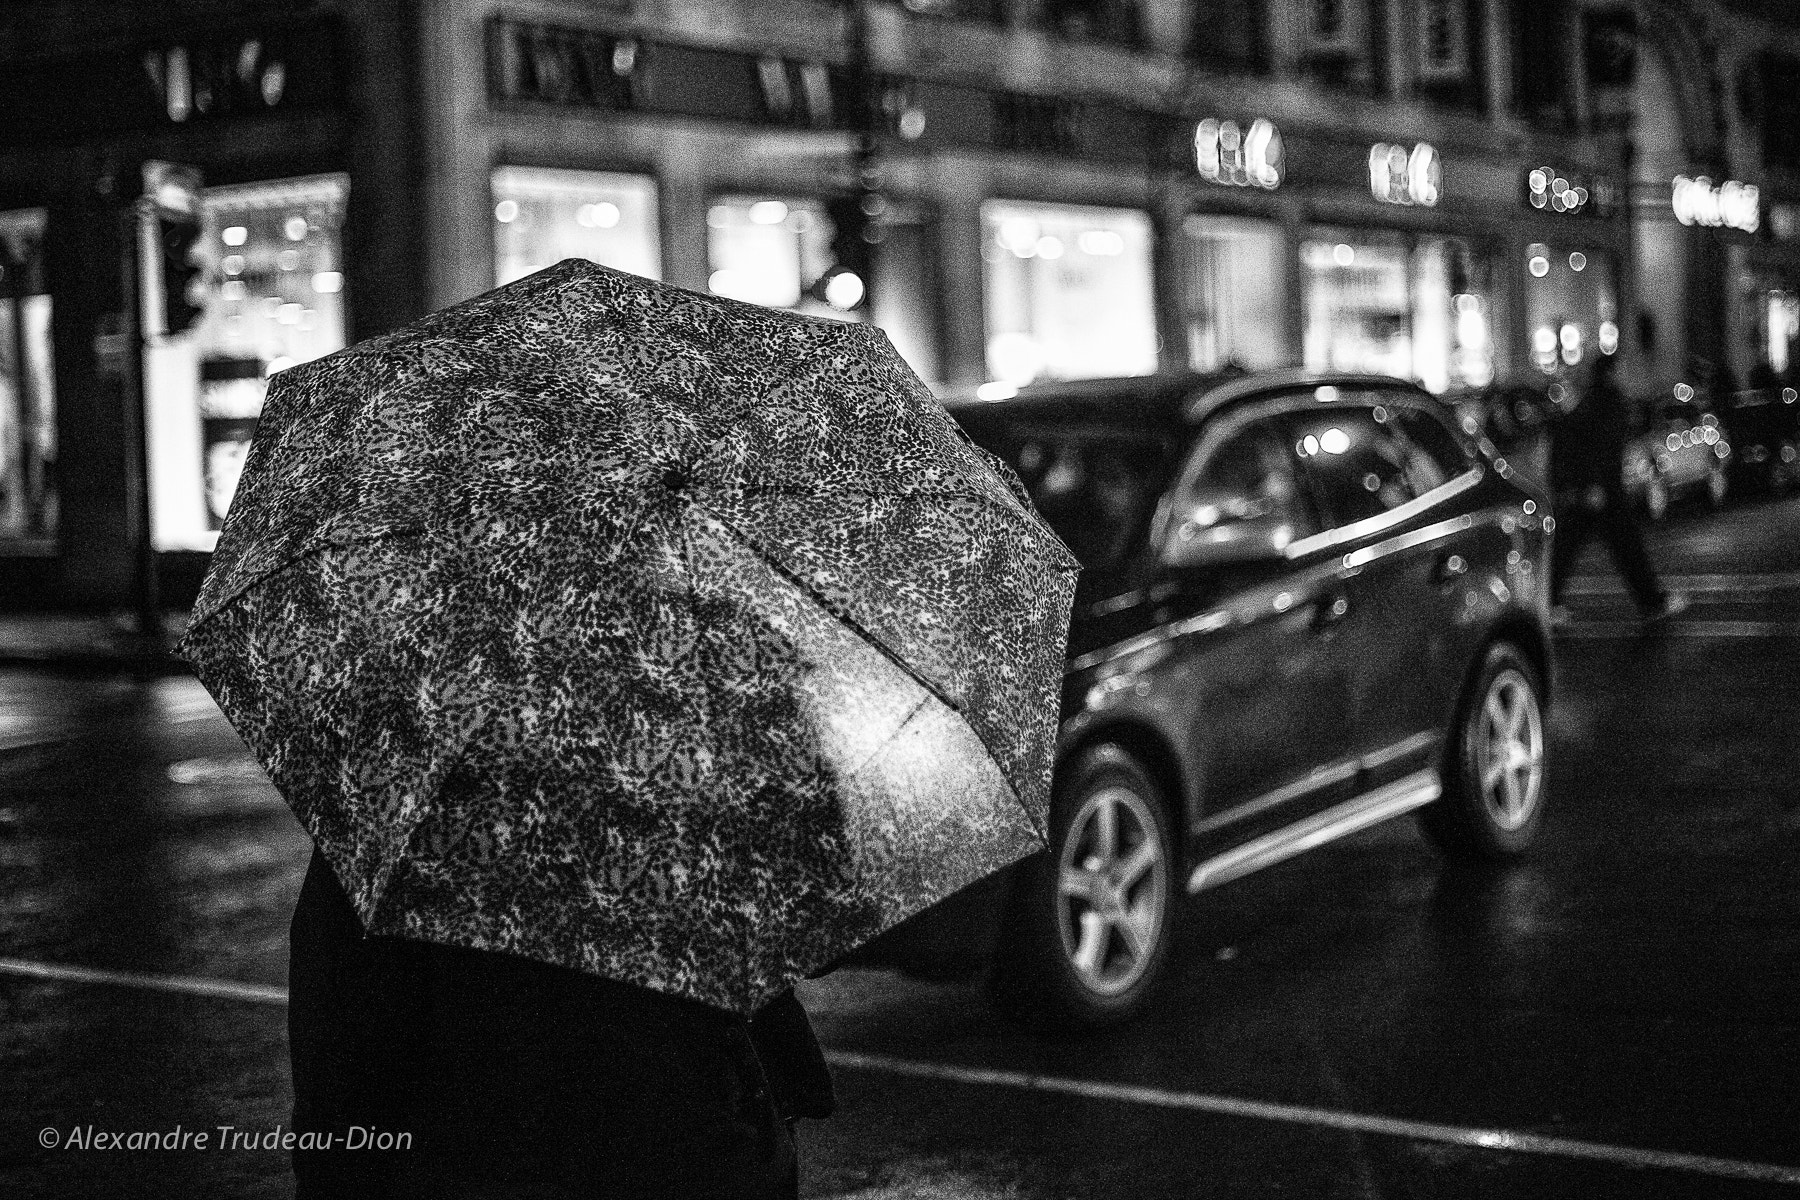 Photograph Umbrella by Alexandre Trudeau-Dion on 500px